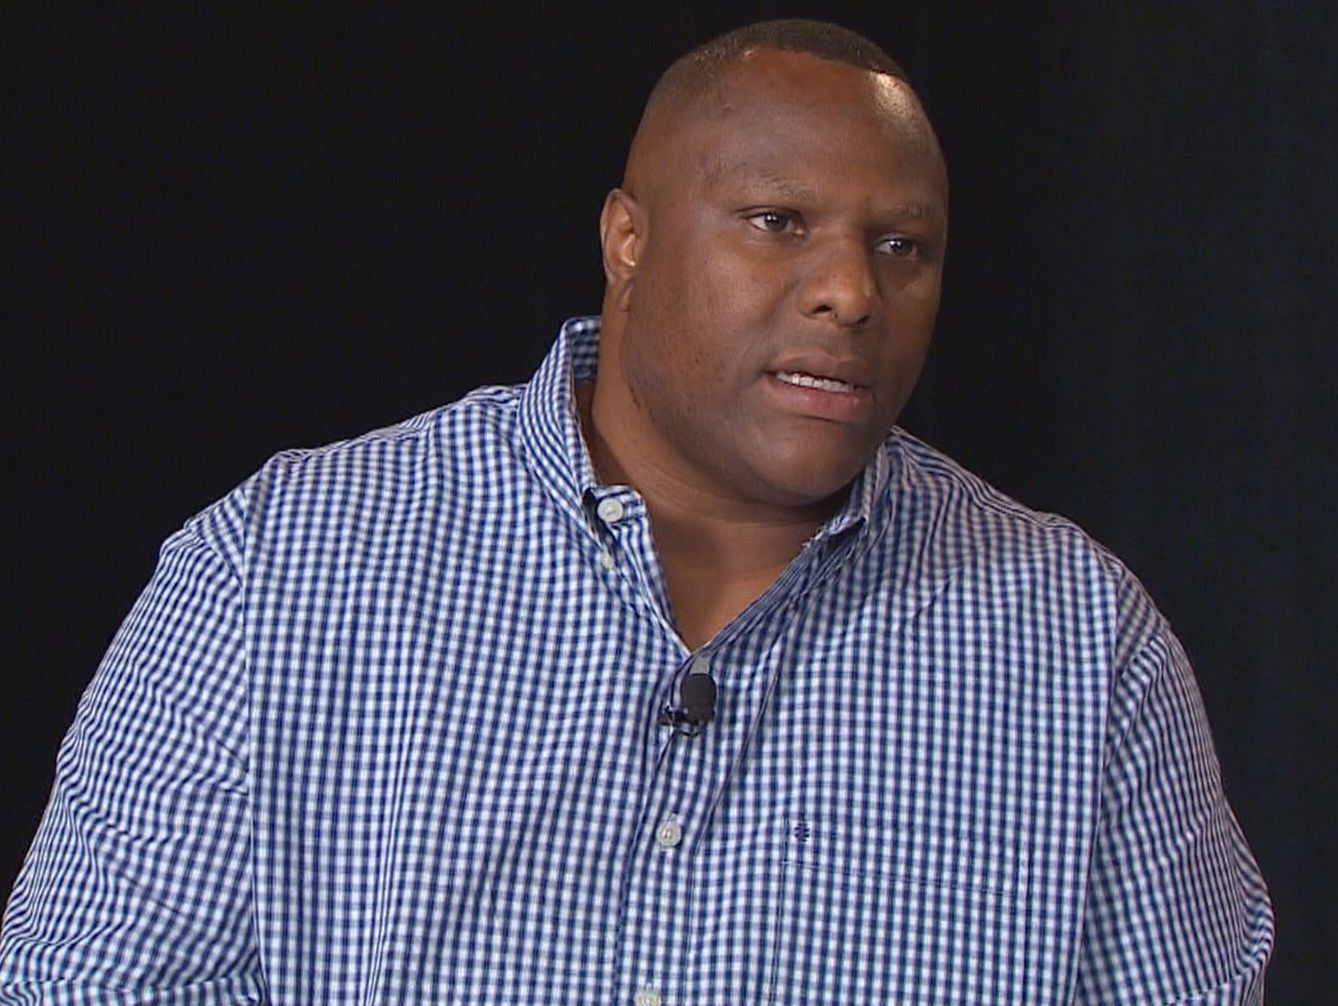 Patrick Williams was a Carter High running back on the 1988 championship team.